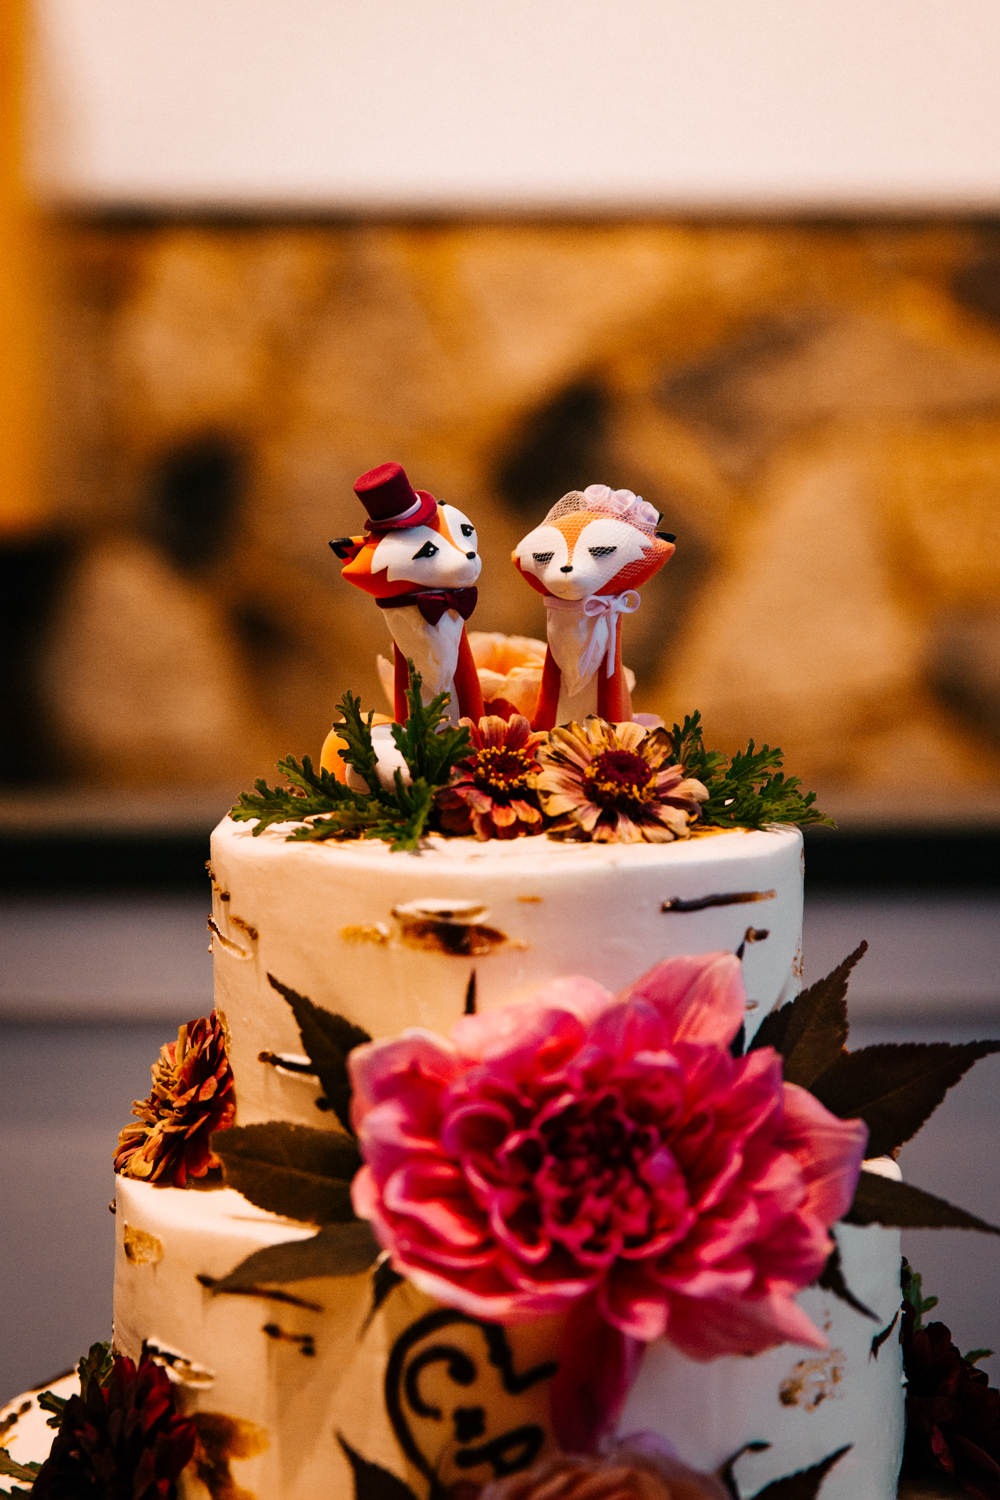 wedding-cake-atumn-fox-theme-details-elizabeth-park-october-boston-wedding-photographer.jpg